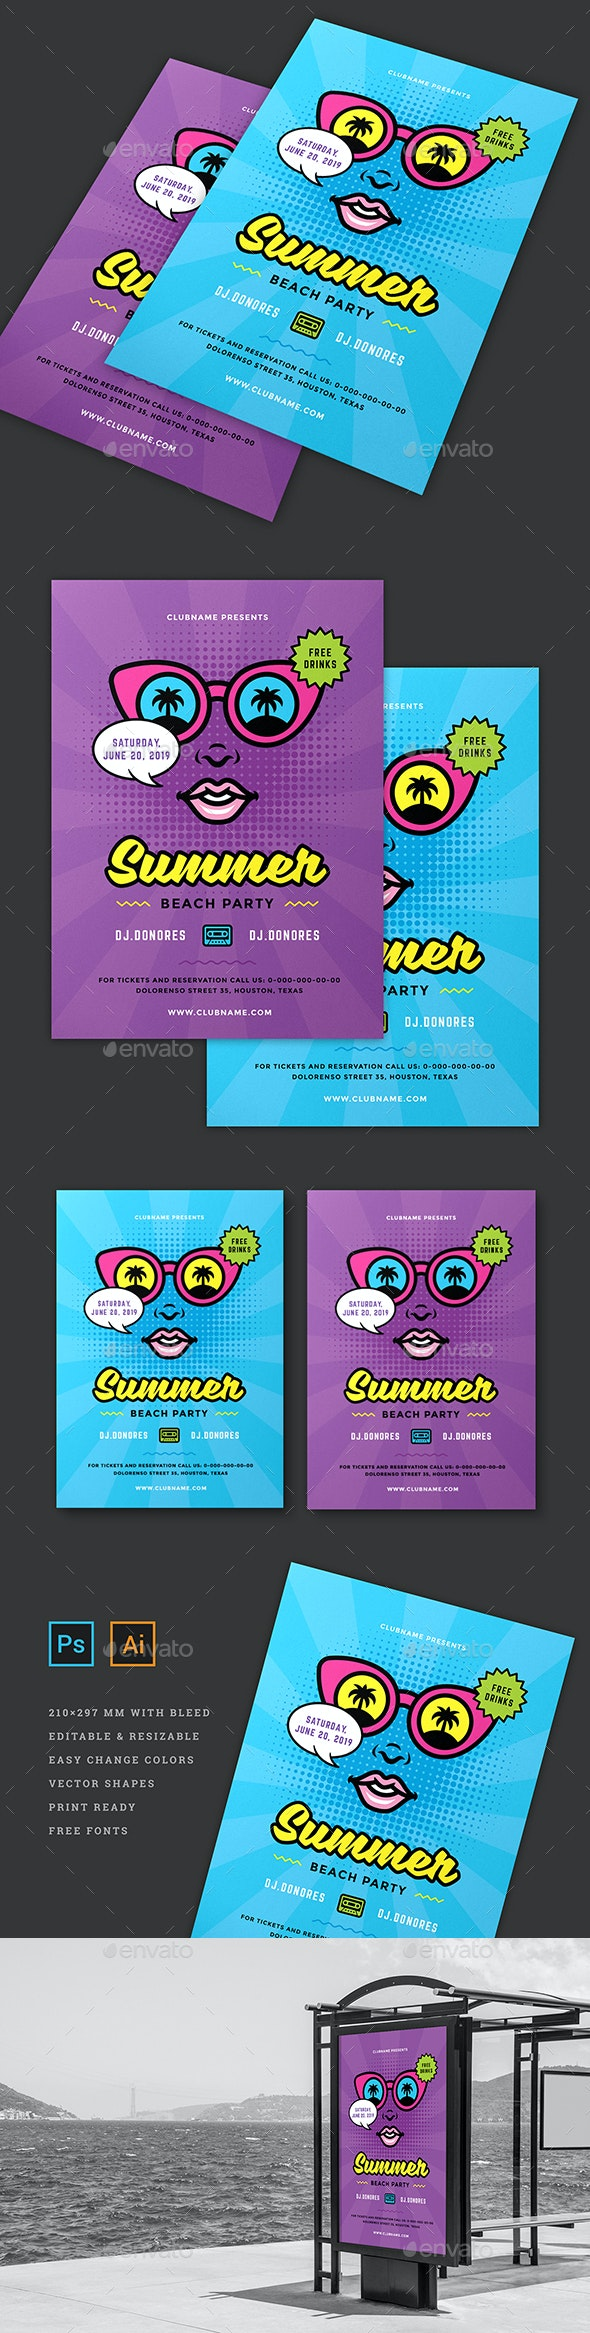 Summer 80s Party Flyer Template - Flyers Print Templates